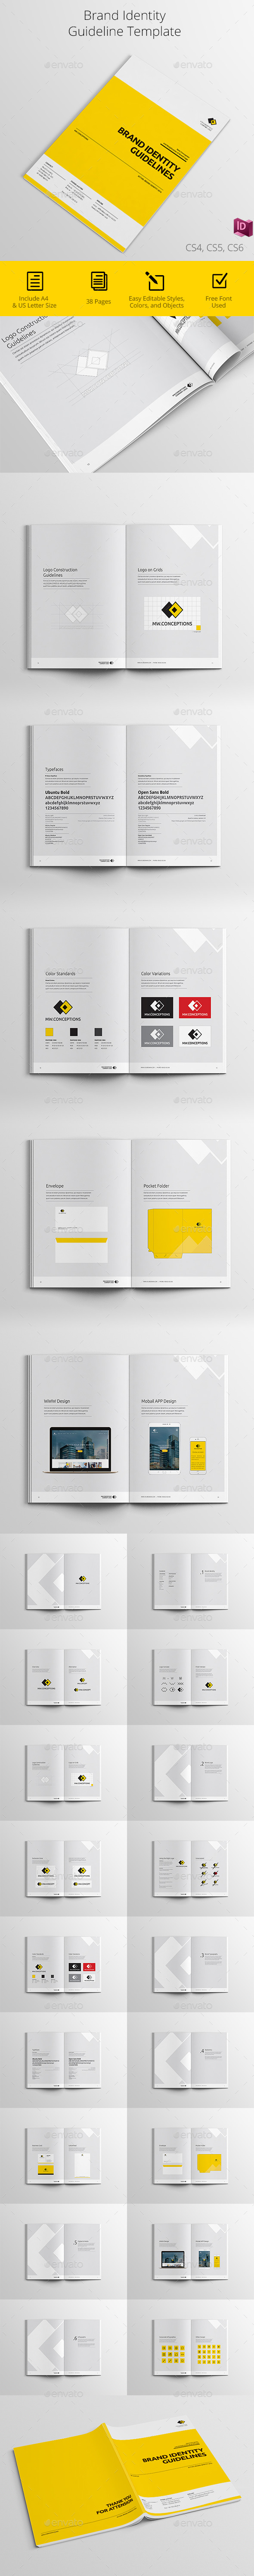 Brand Guidelines Graphics Designs Templates From Graphicriver